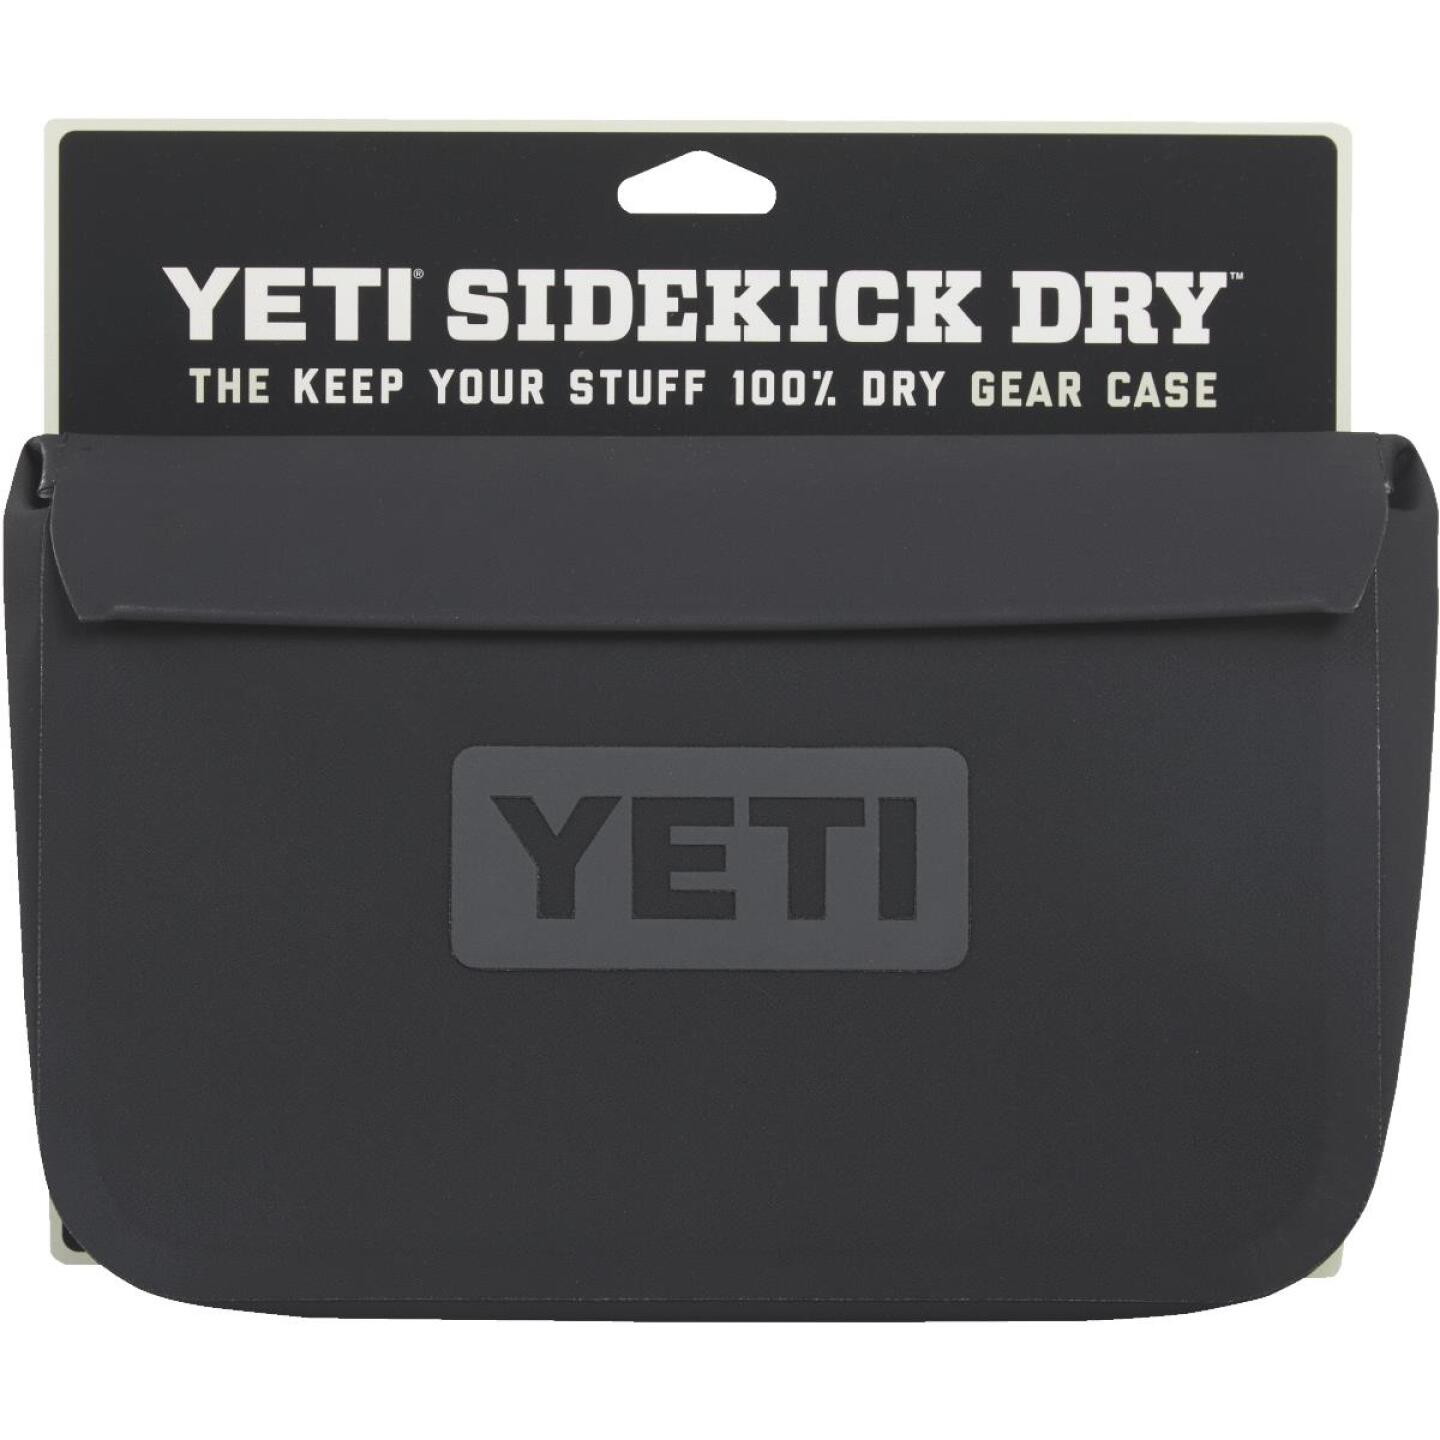 Yeti SideKick Dry 11 In. Charcoal Storage Pouch Image 2